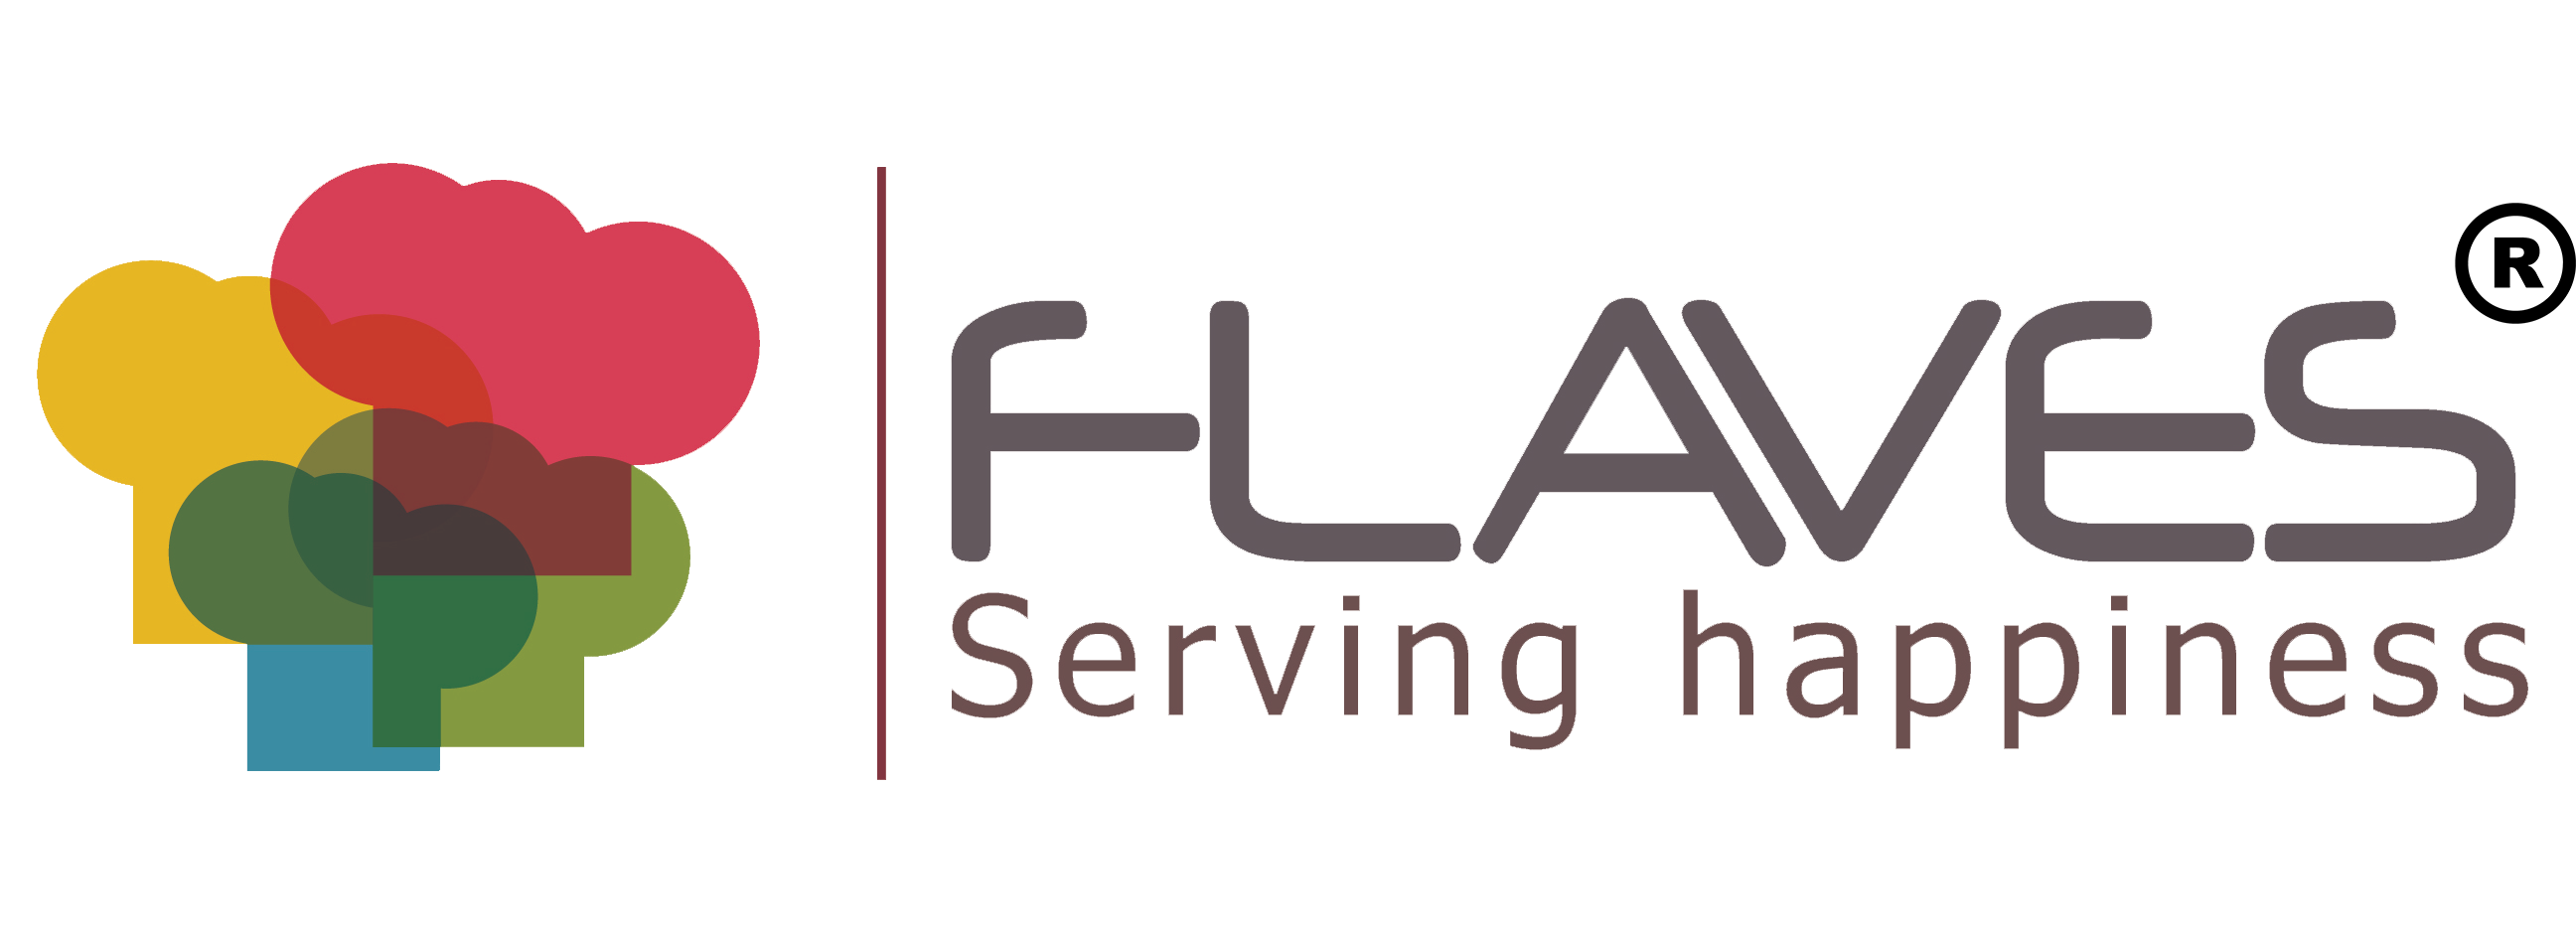 Flaves Restaurant & Banquet Hall Logo